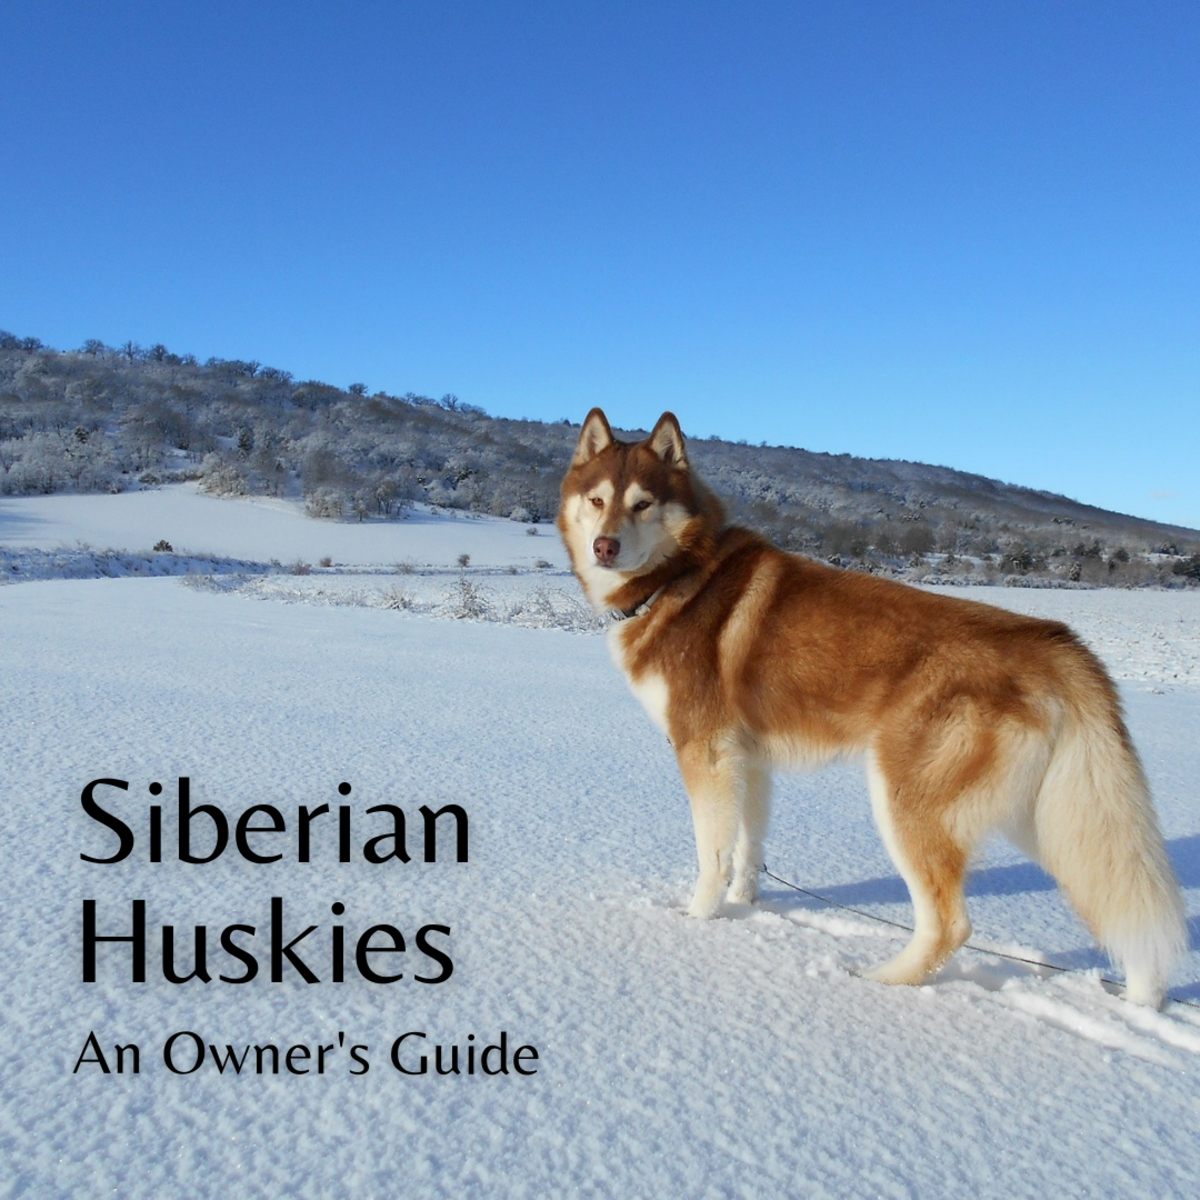 This guide will provide a breakdown of what's it's like to own a Siberian Husky.